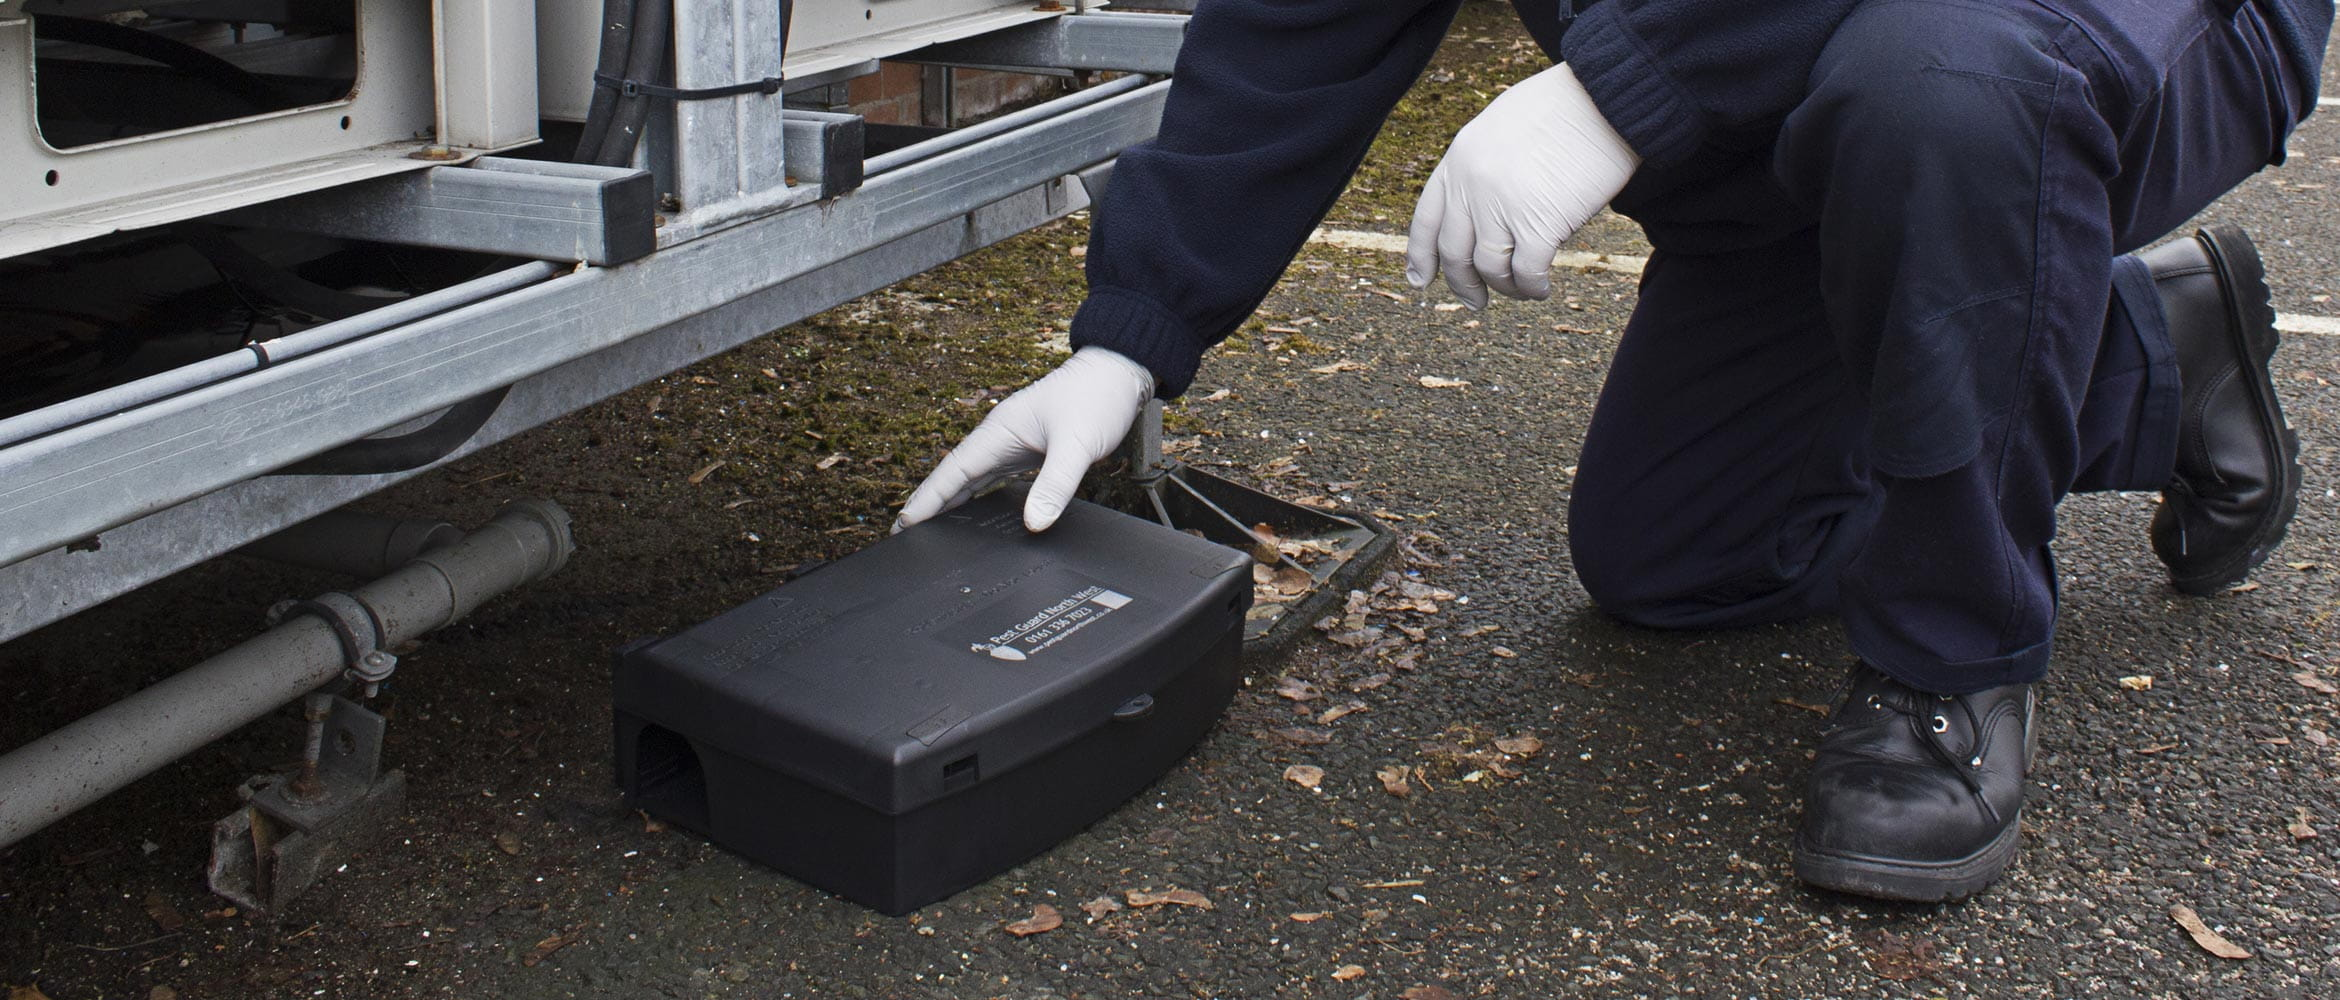 Pest control agent placing device on ground